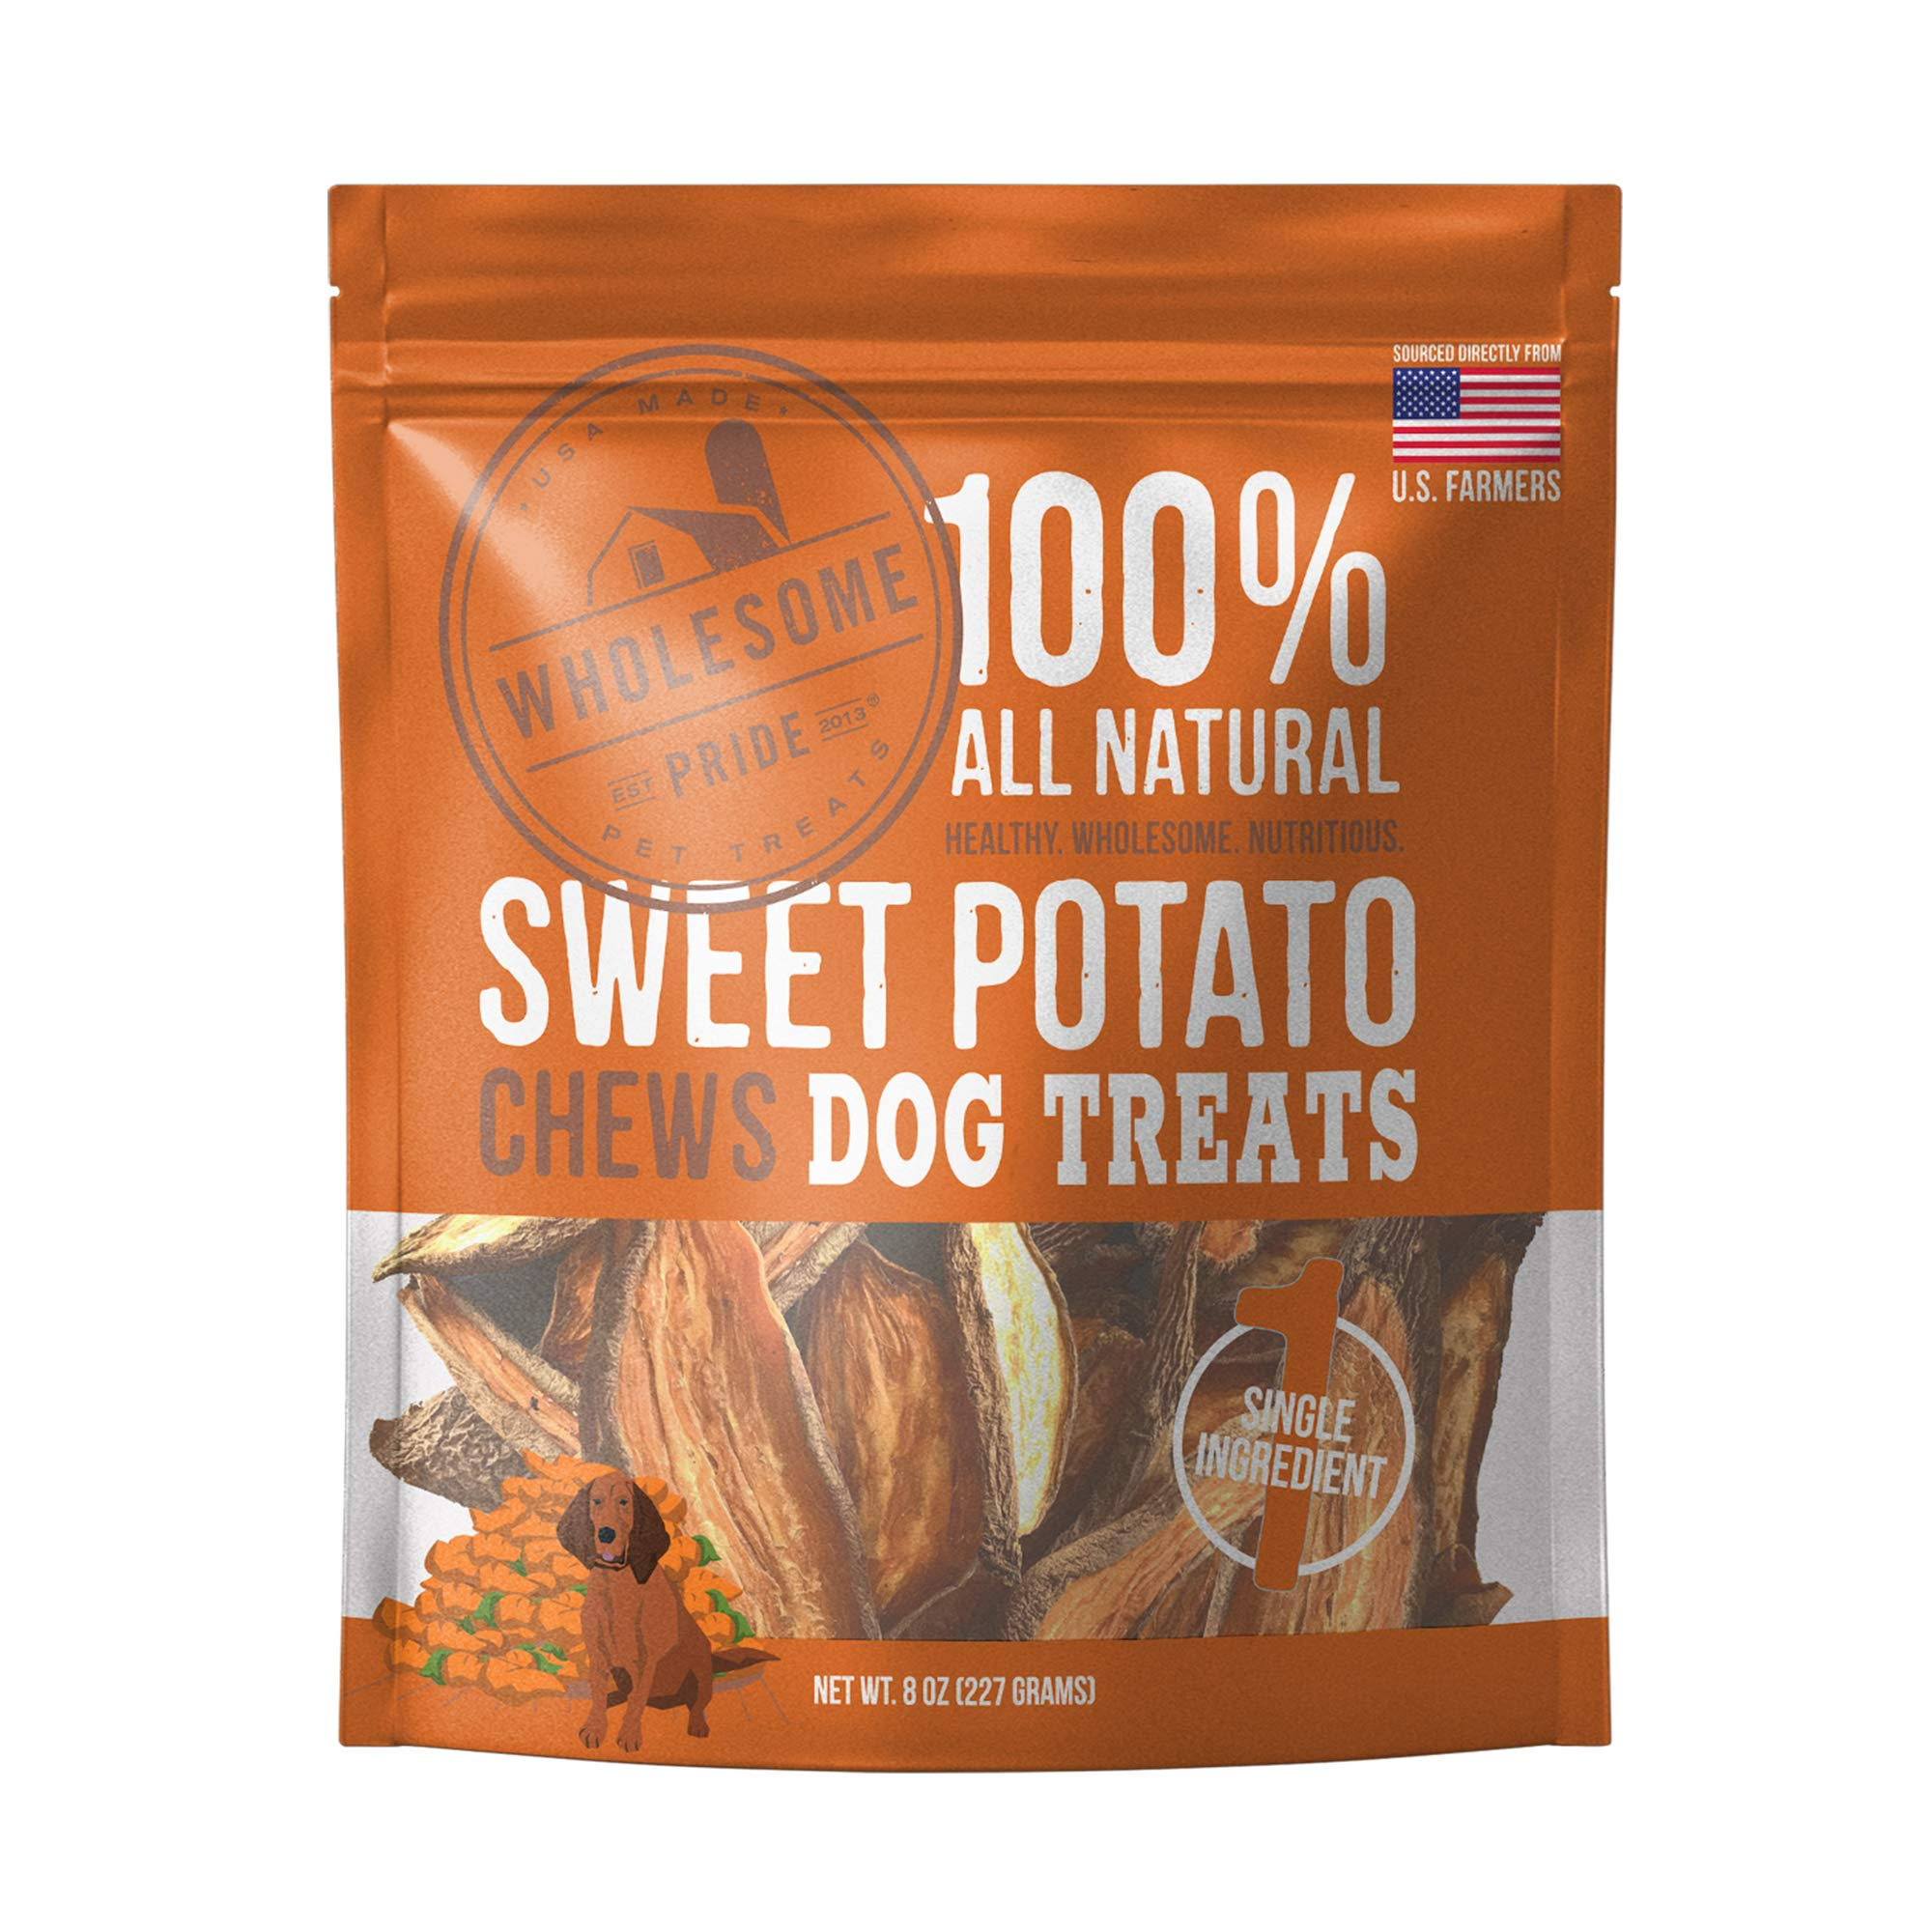 Wholesome Pride Sweet Potato Chews Dog Treats - 8 oz